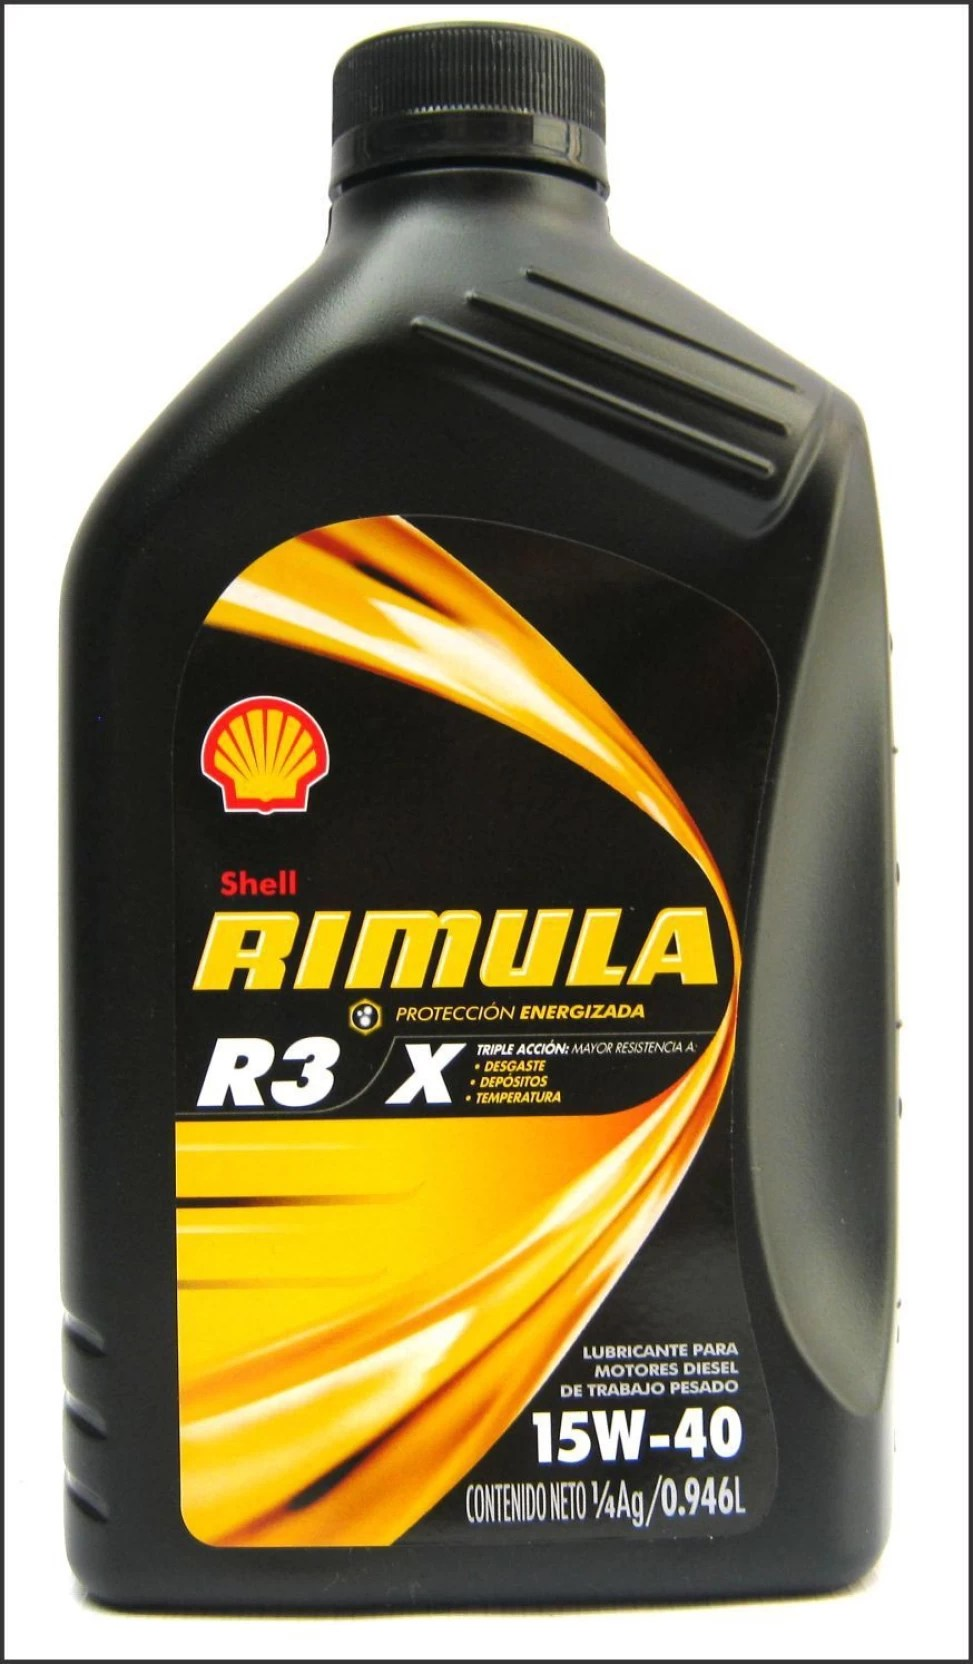 15w40 Olie Shell Rimula R3x 15w40 Engine Oil Price In India - Buy